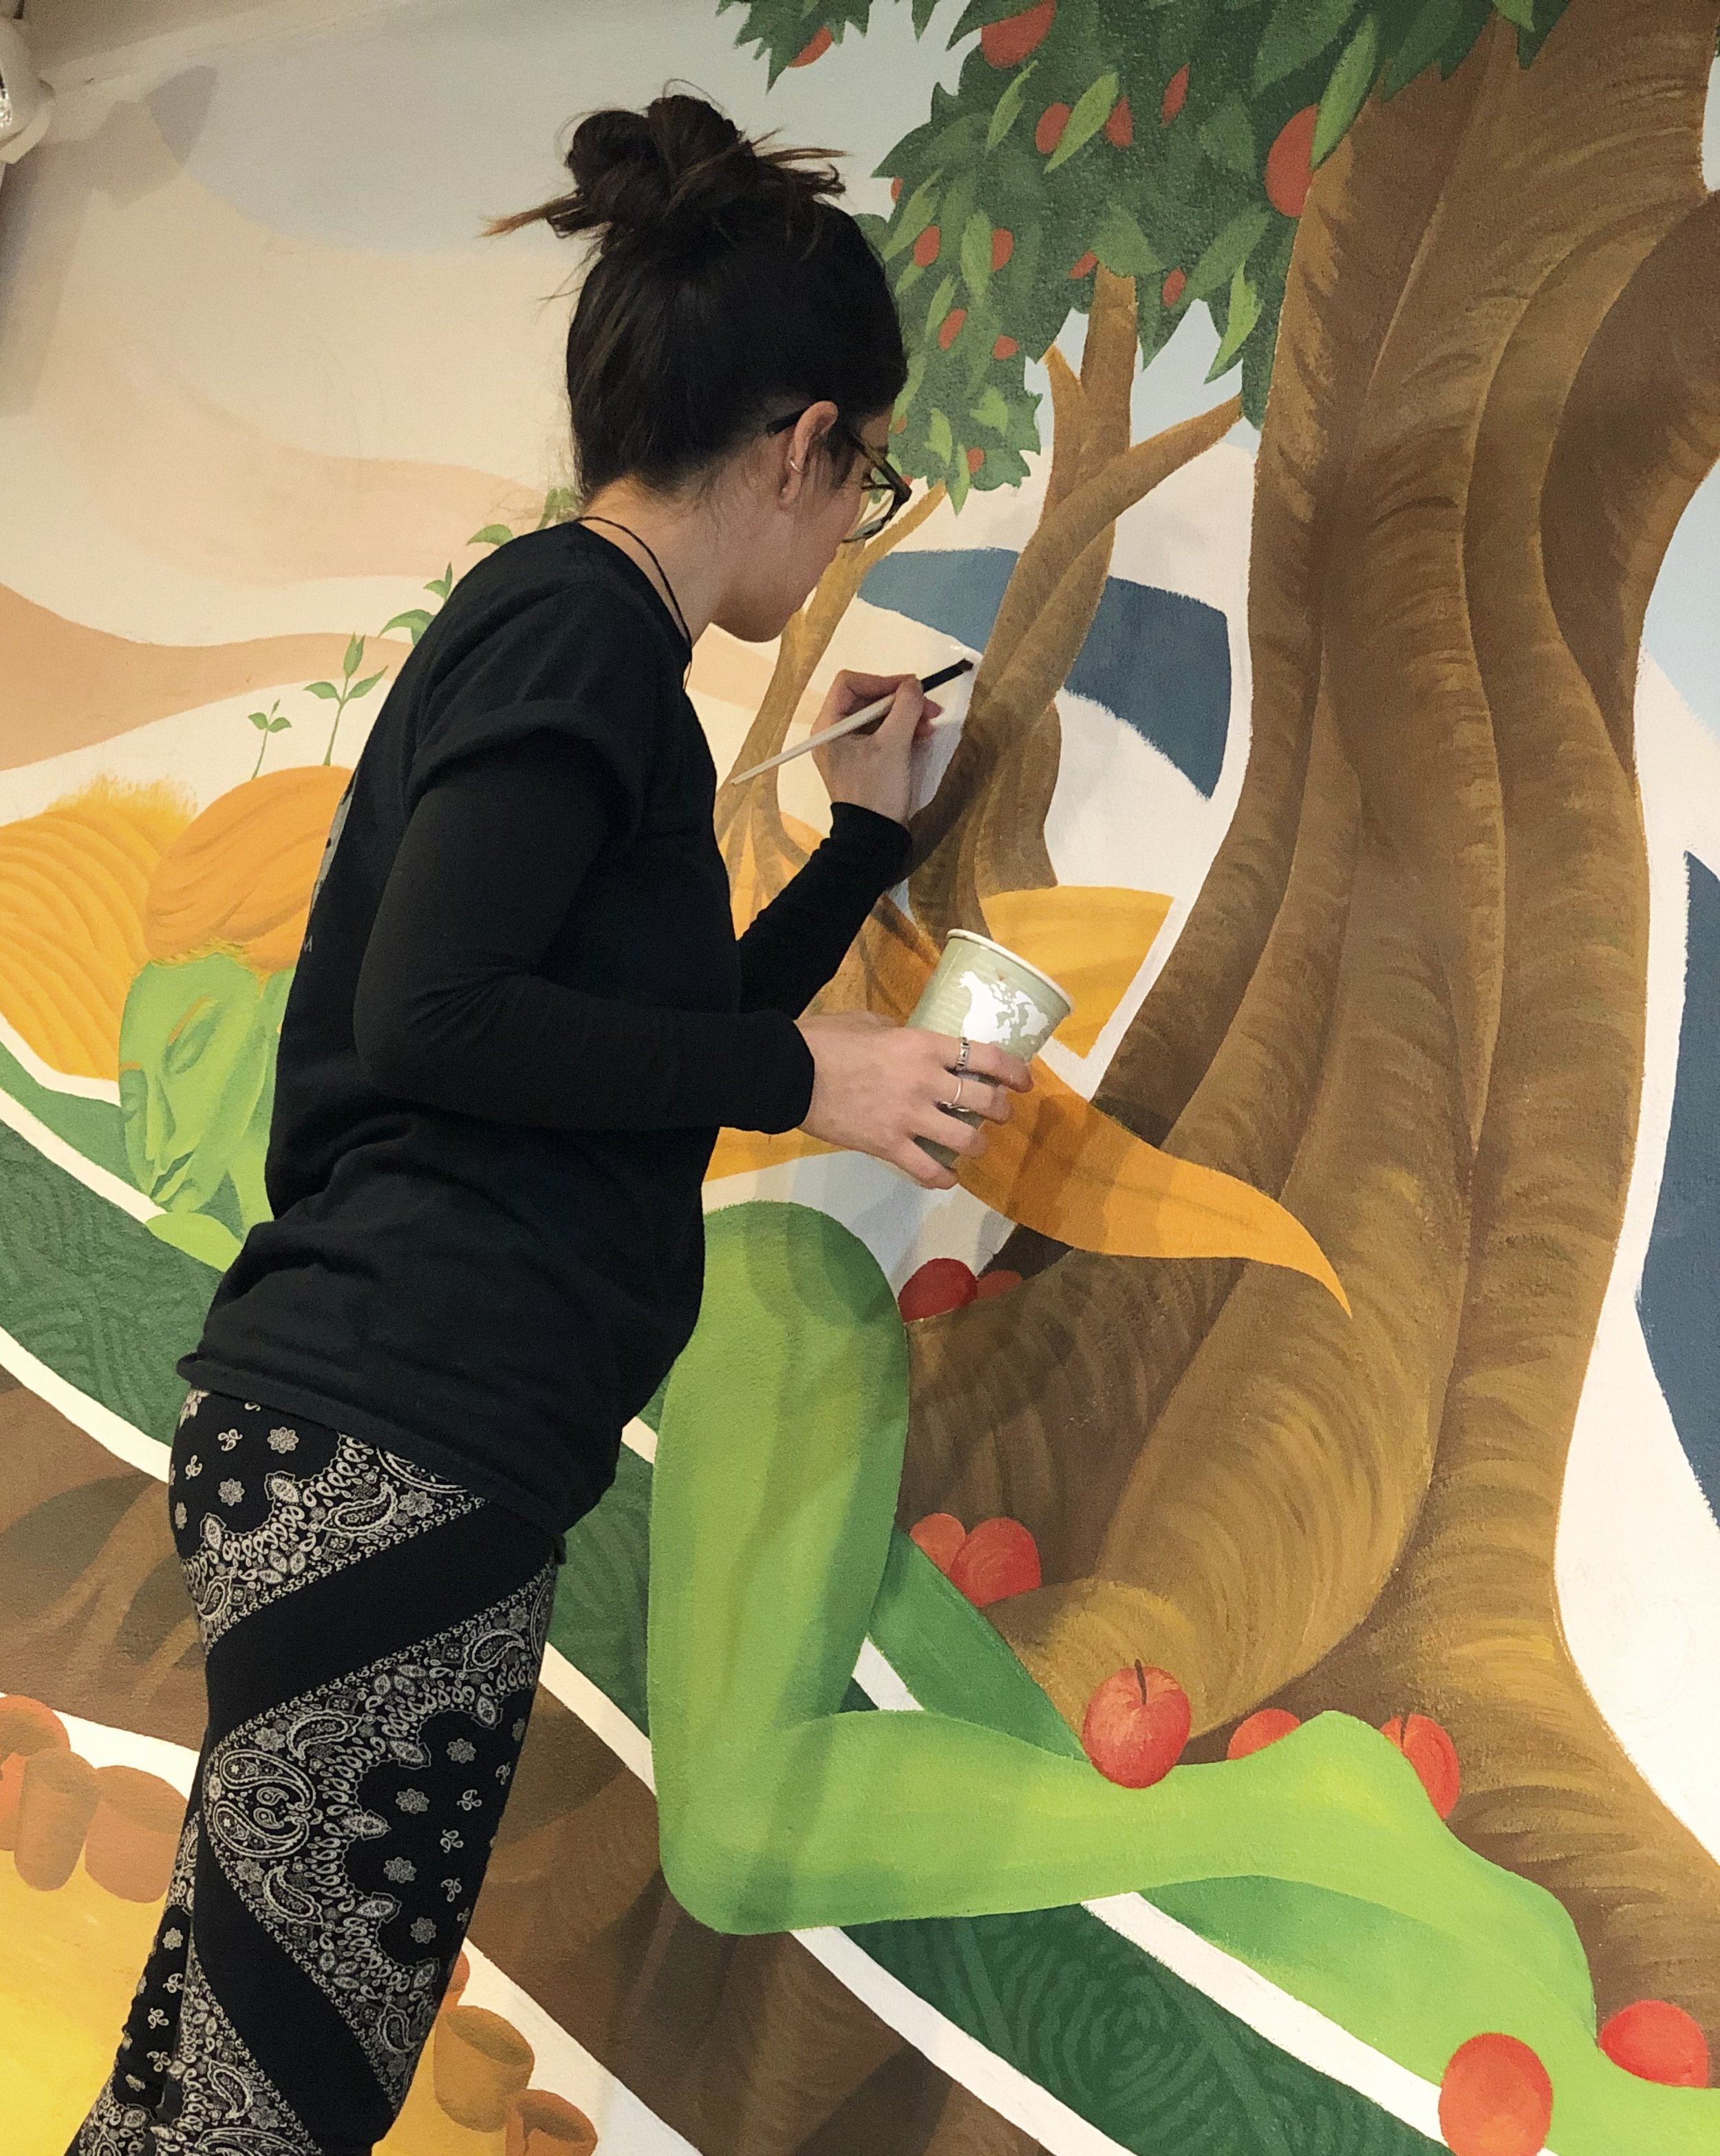 Sylvia Annelise Hecht painting a mural in her hometown, Madison, Wisconsin.